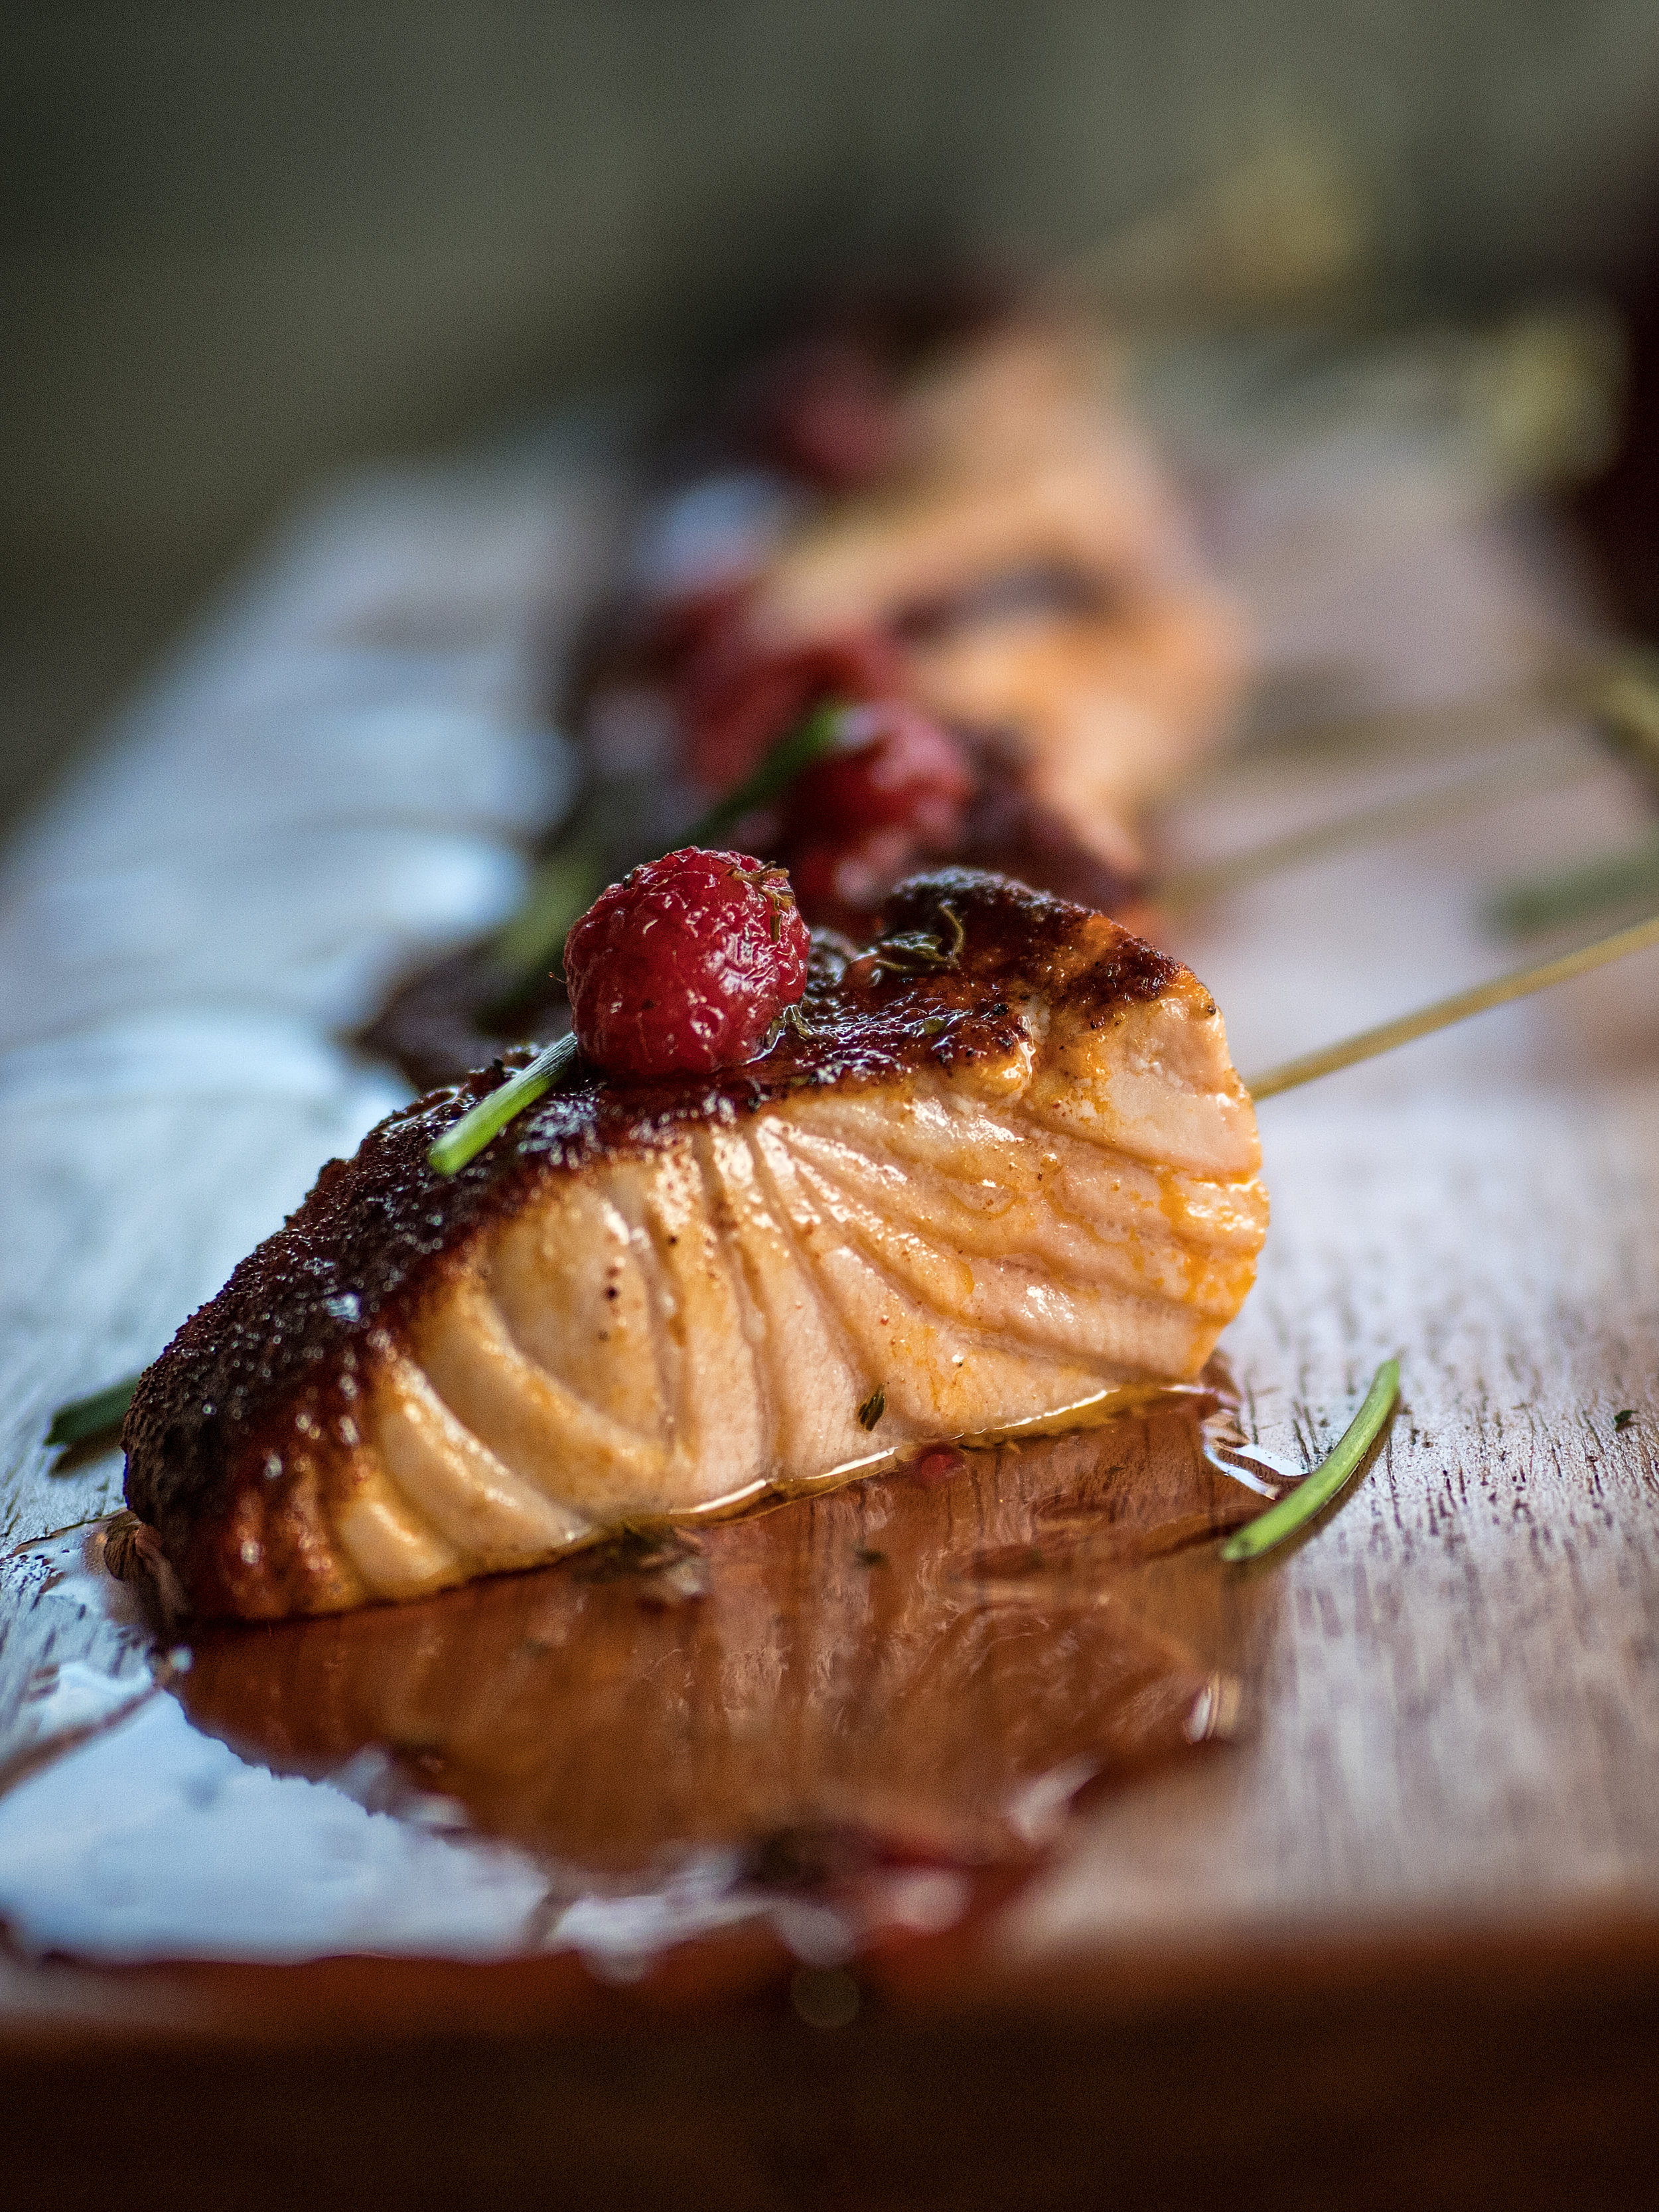 Musings by the Glass - Tips for Pairing Wine and Seafood - Torched Salmon with Barbecue Rub